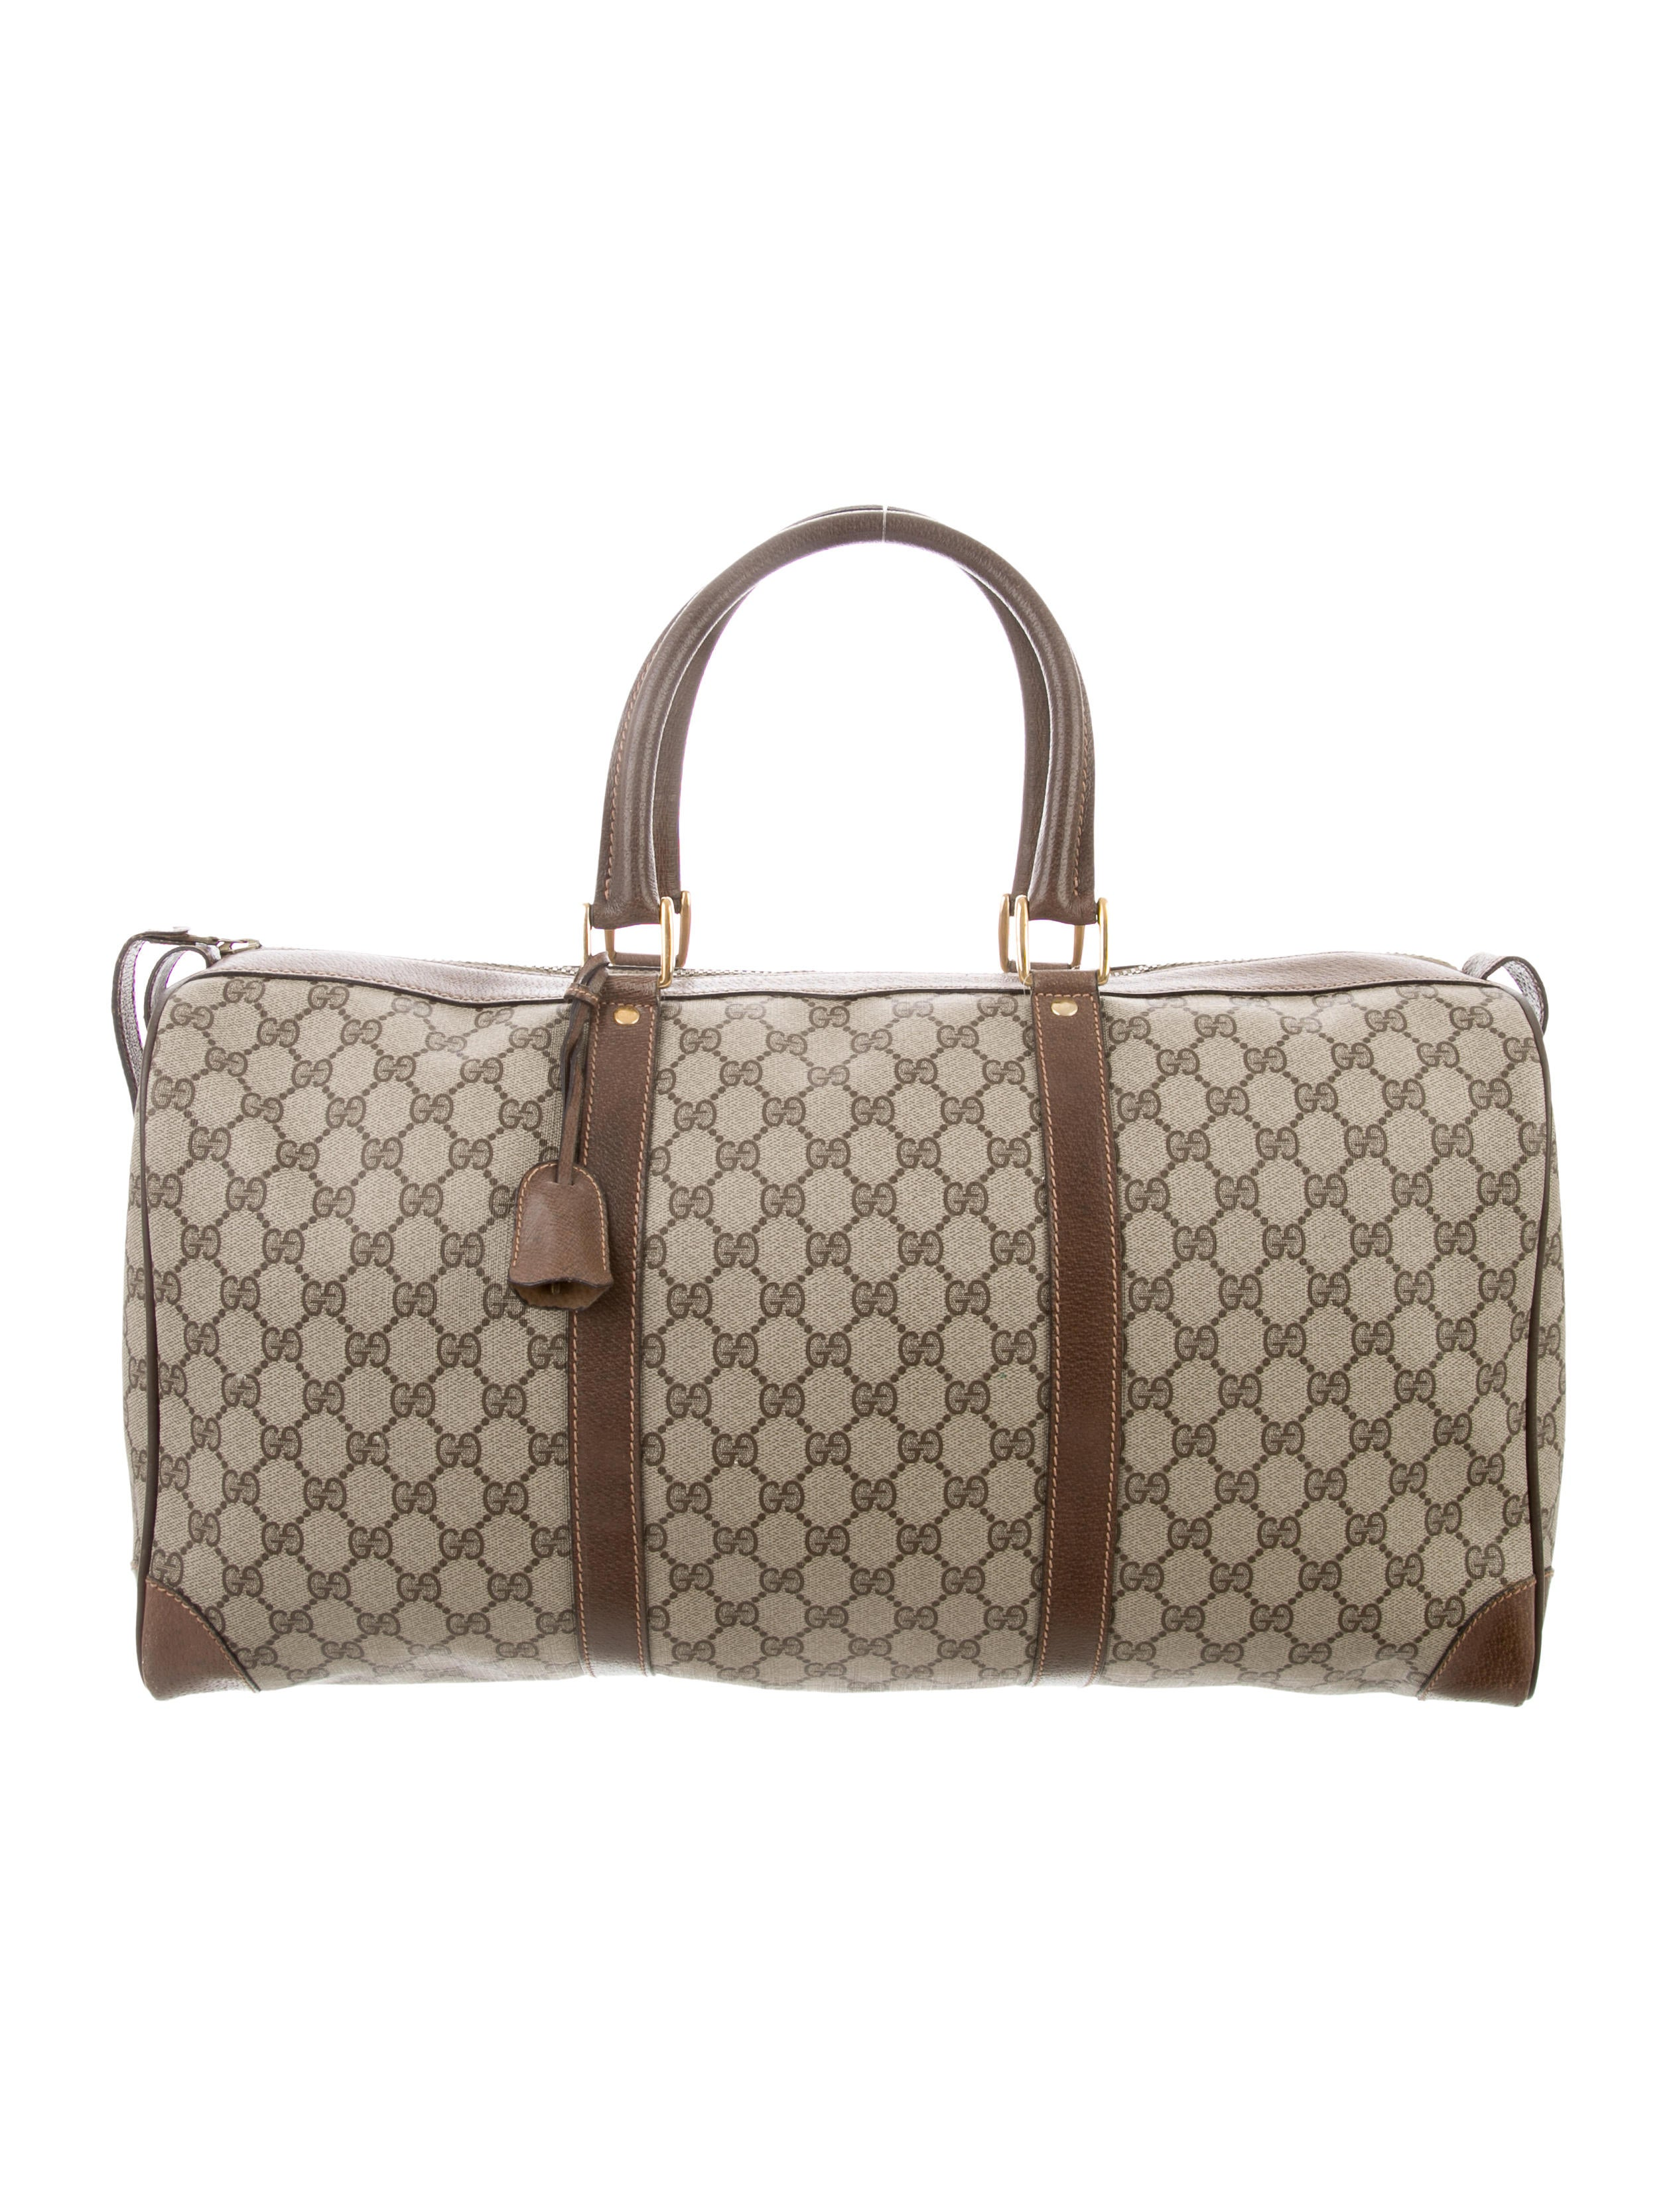 Gucci Vintage GG Plus Duffle Bag - Handbags - GUC284604  5caa504d59b6